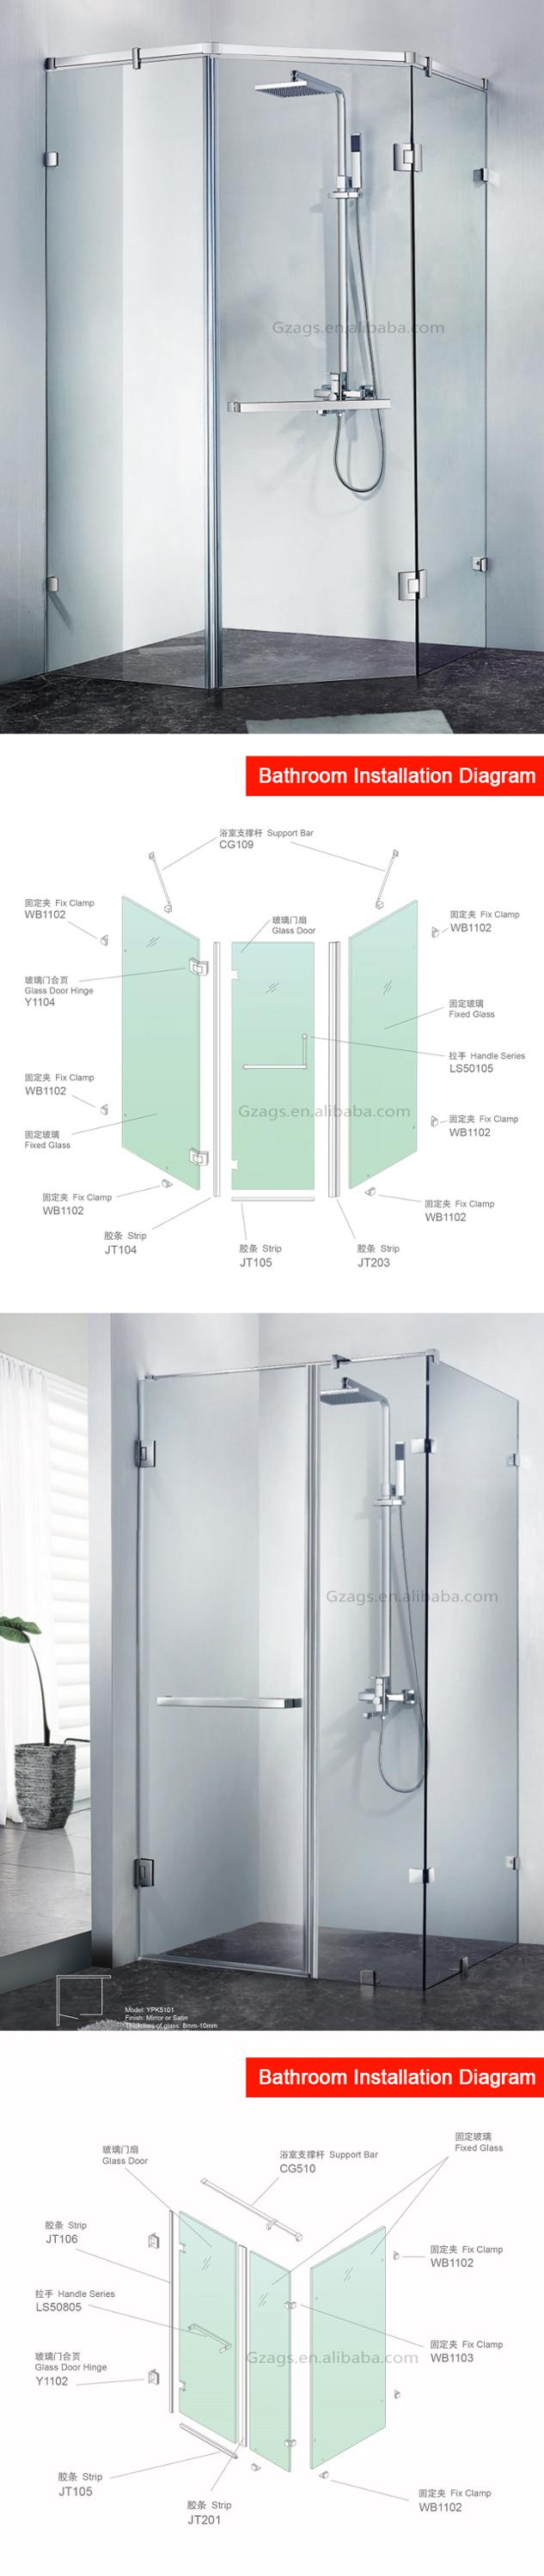 Concise Design Shower Door Frameless Frosted Glass Bathroom Door Buy Frosted Glass Pocket Doors Frosted Glass Bathroom Door Frameless Glass Door